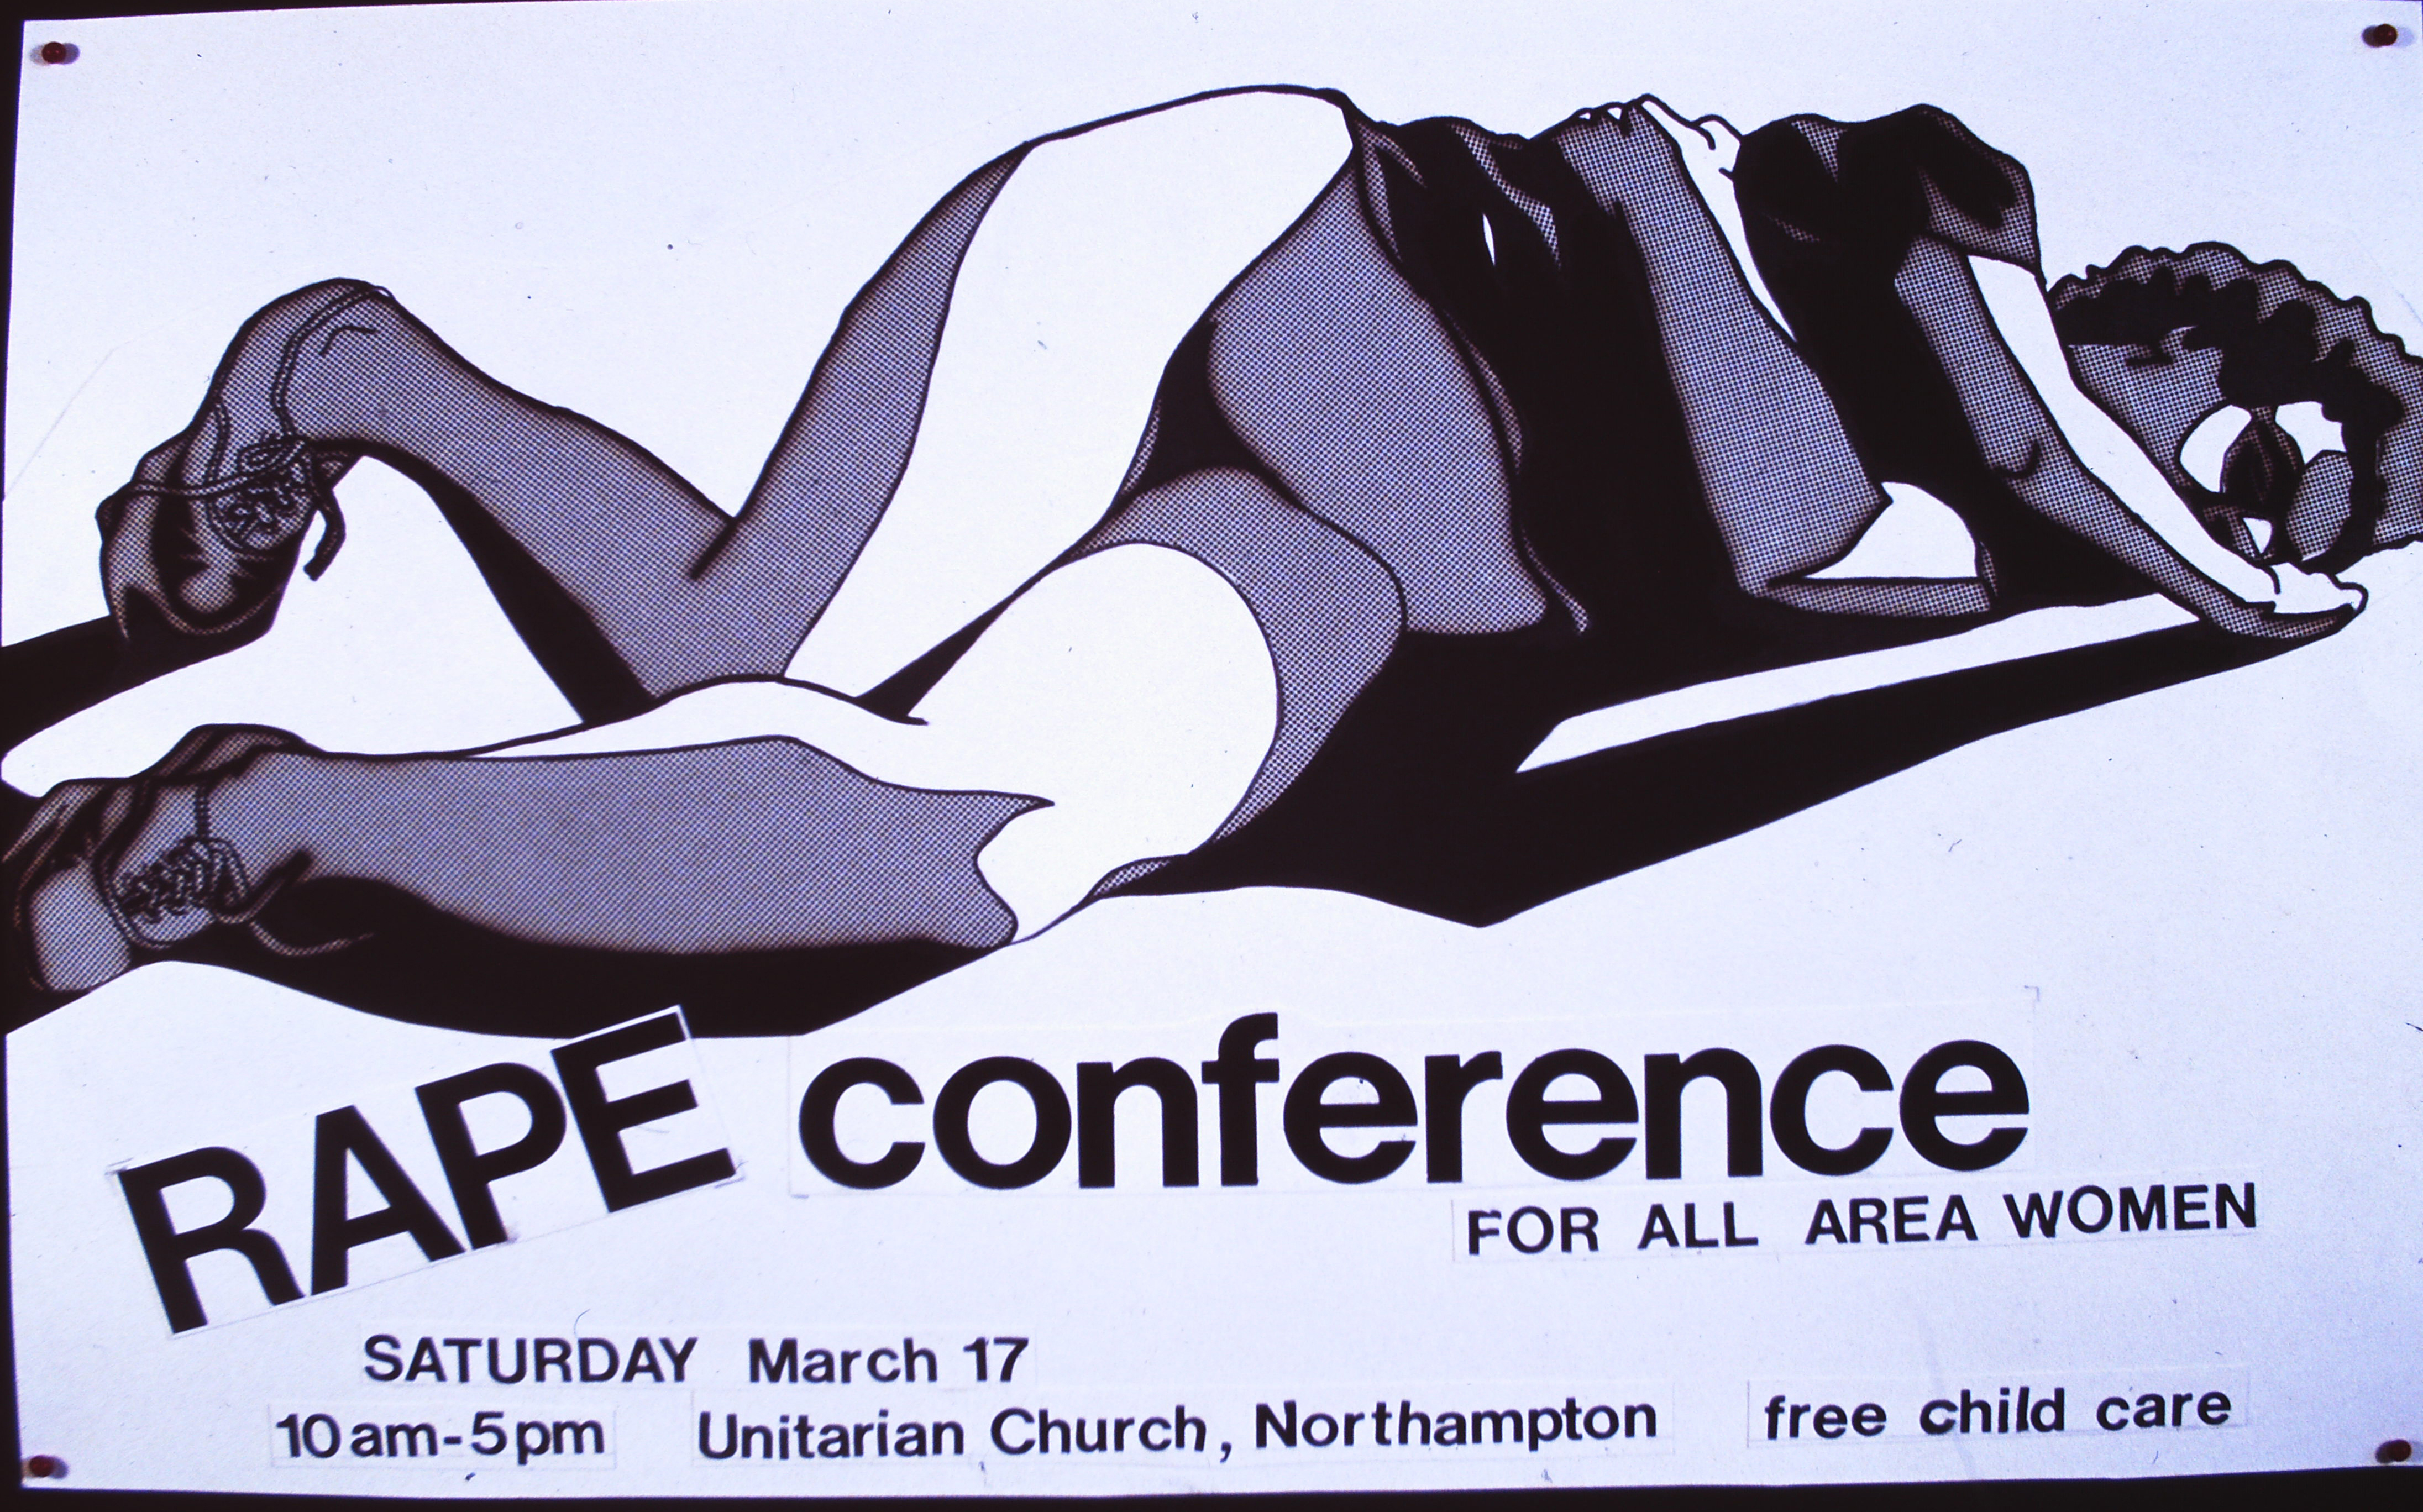 rape conference poster by me